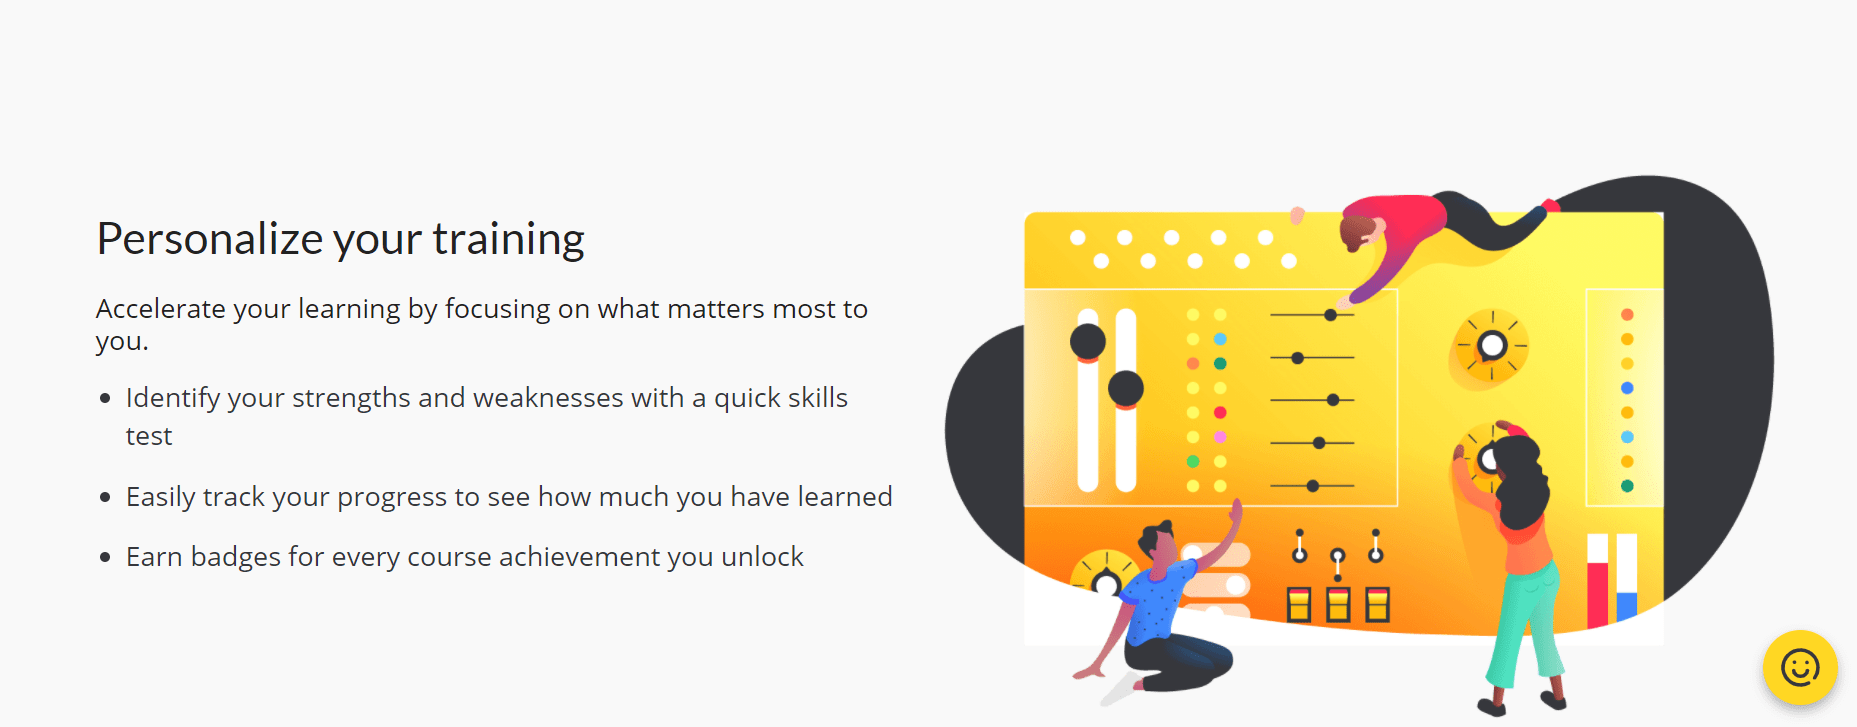 Goskills Review personlise your training